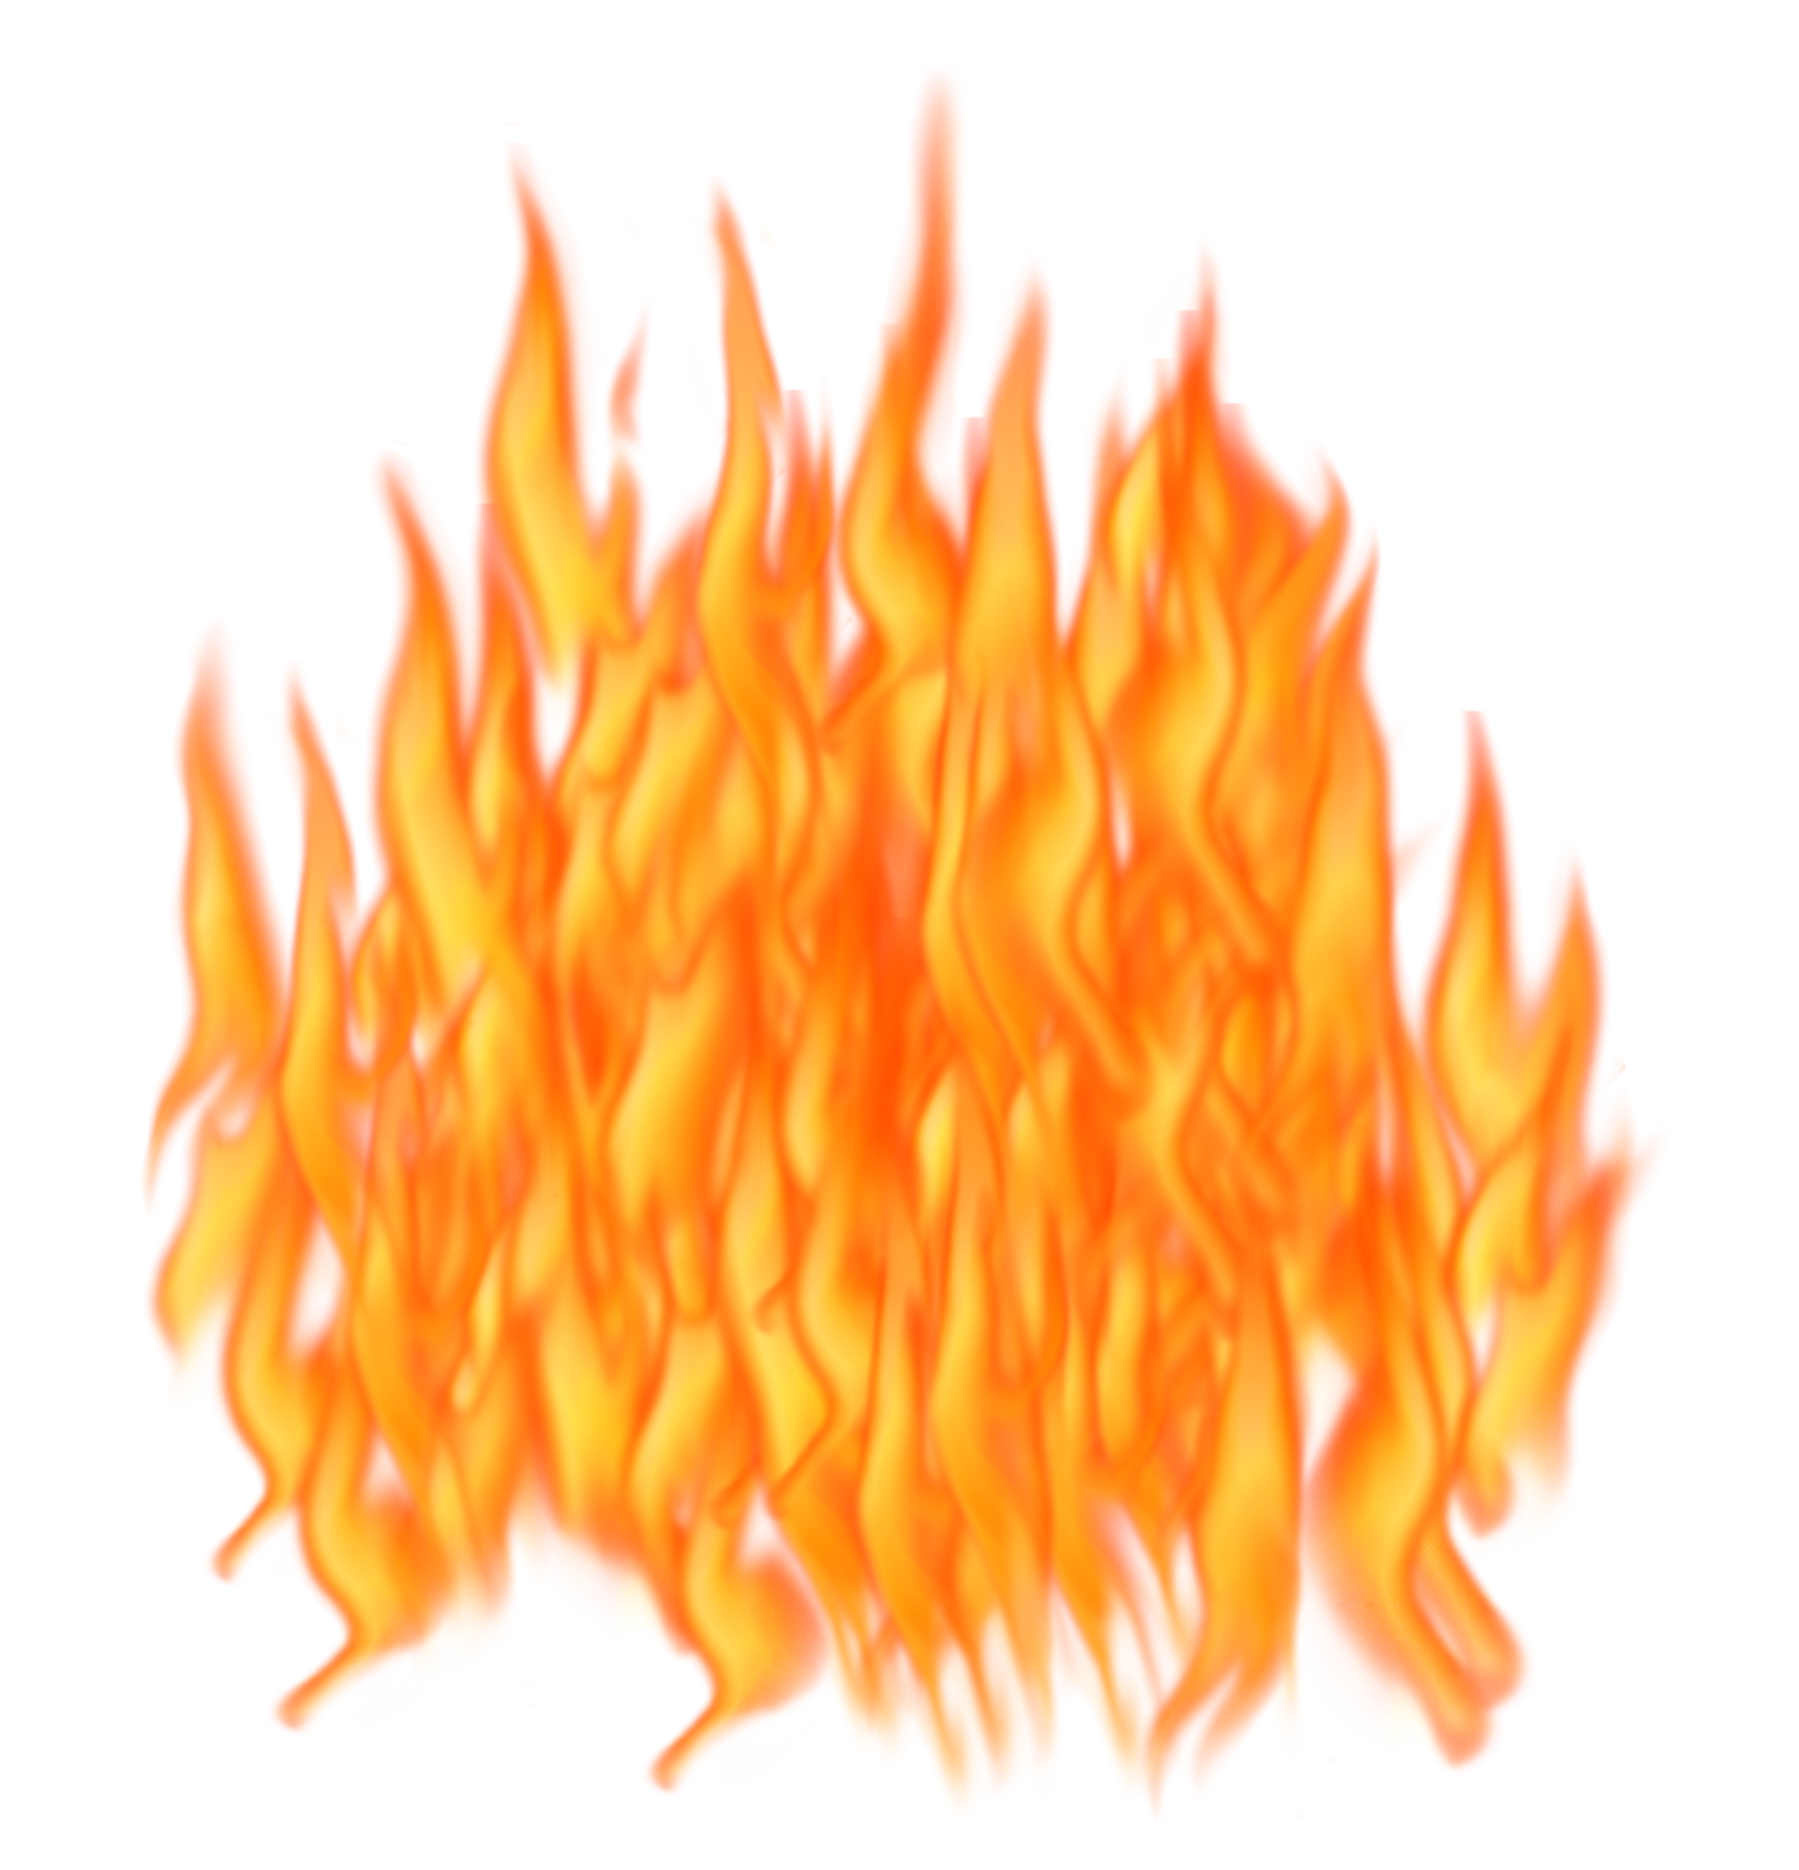 Flames clipart. Png image gallery yopriceville clip library